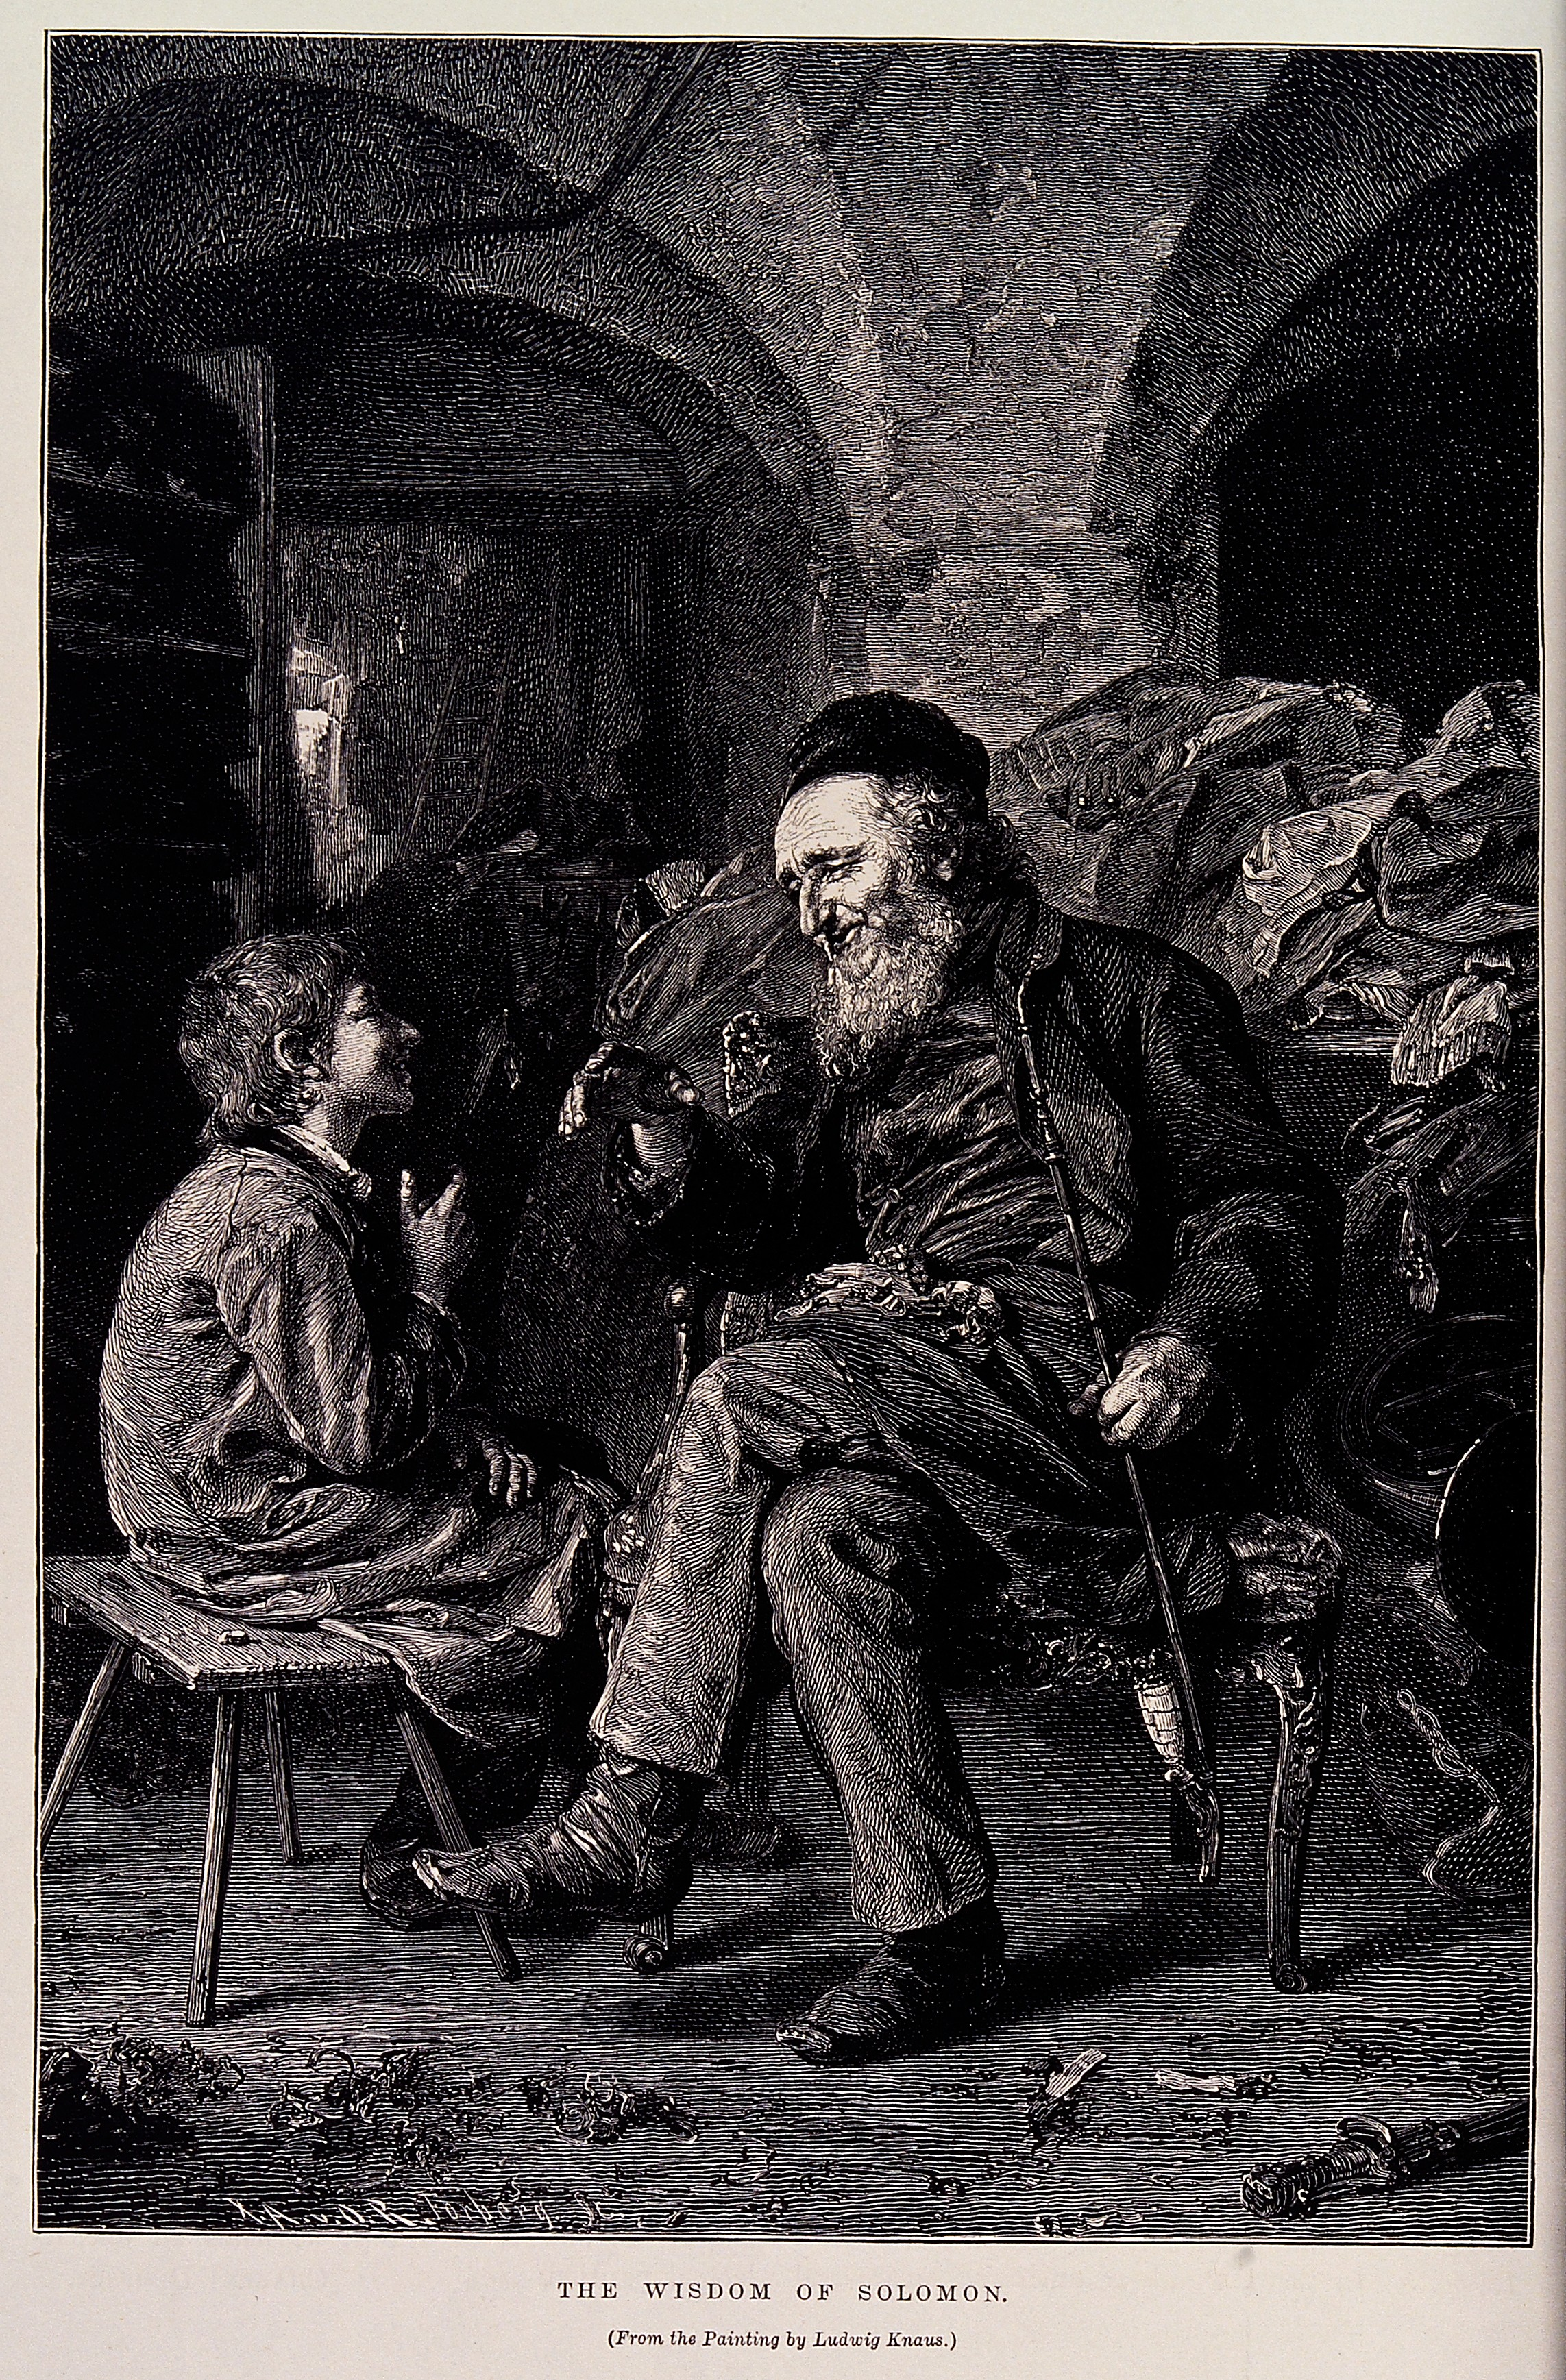 A young boy listens to an old man